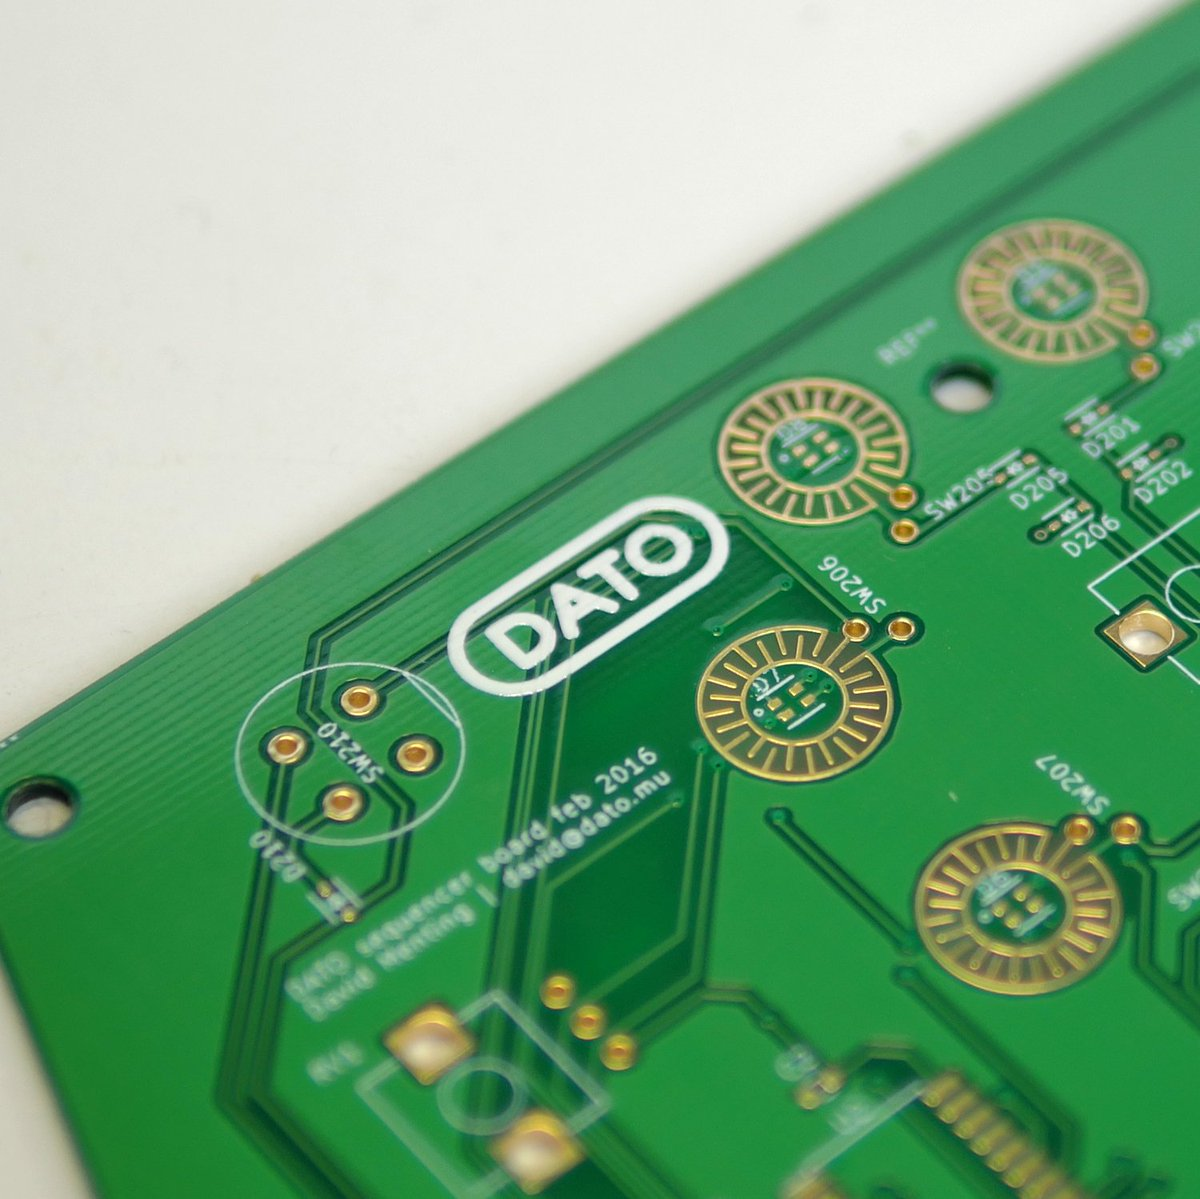 Circuit Boards Arrived By Mail